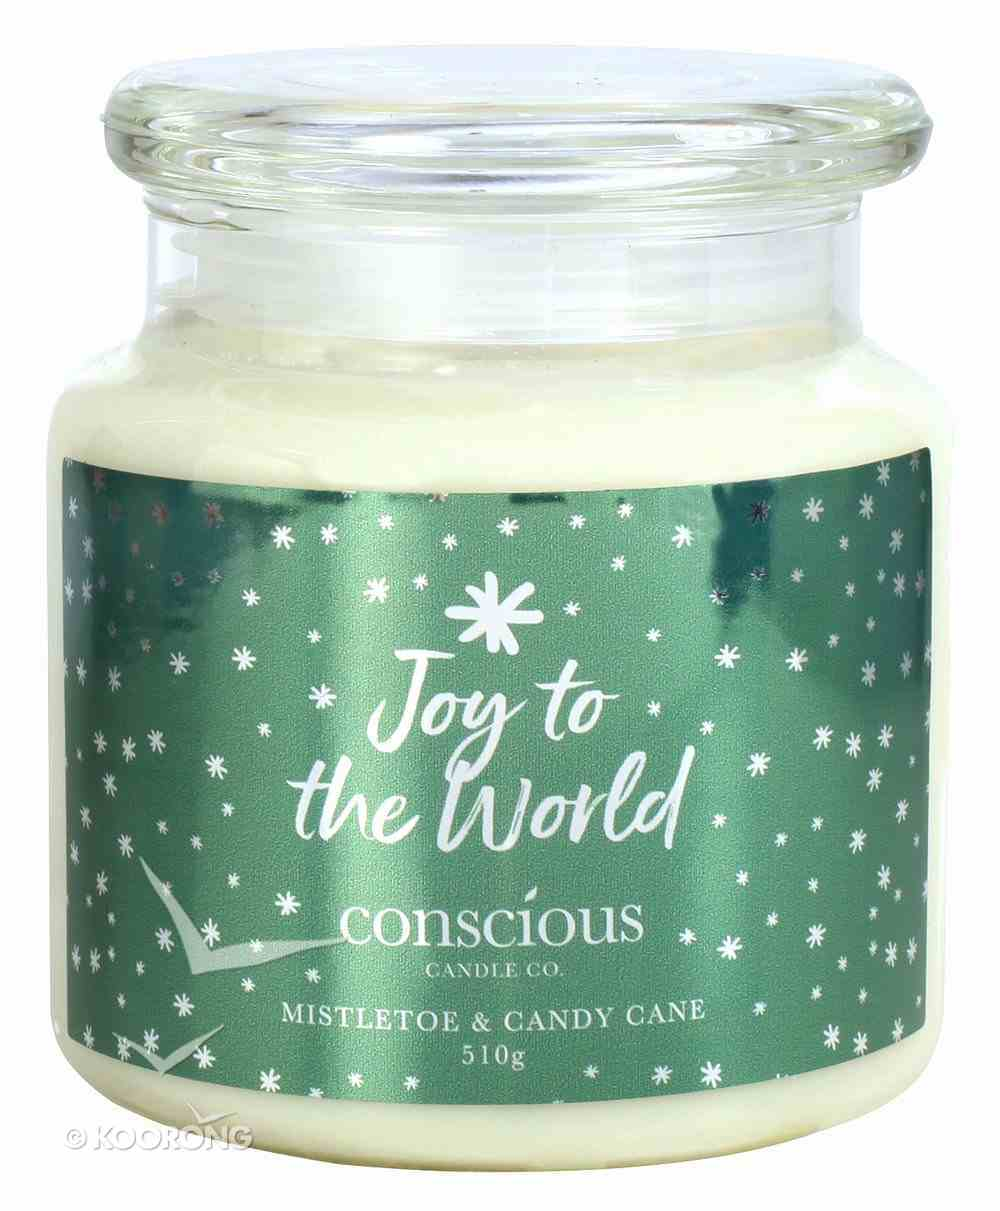 Quality Soy Christmas Candle: Joy to the World, Crushed Candy Cane Homeware